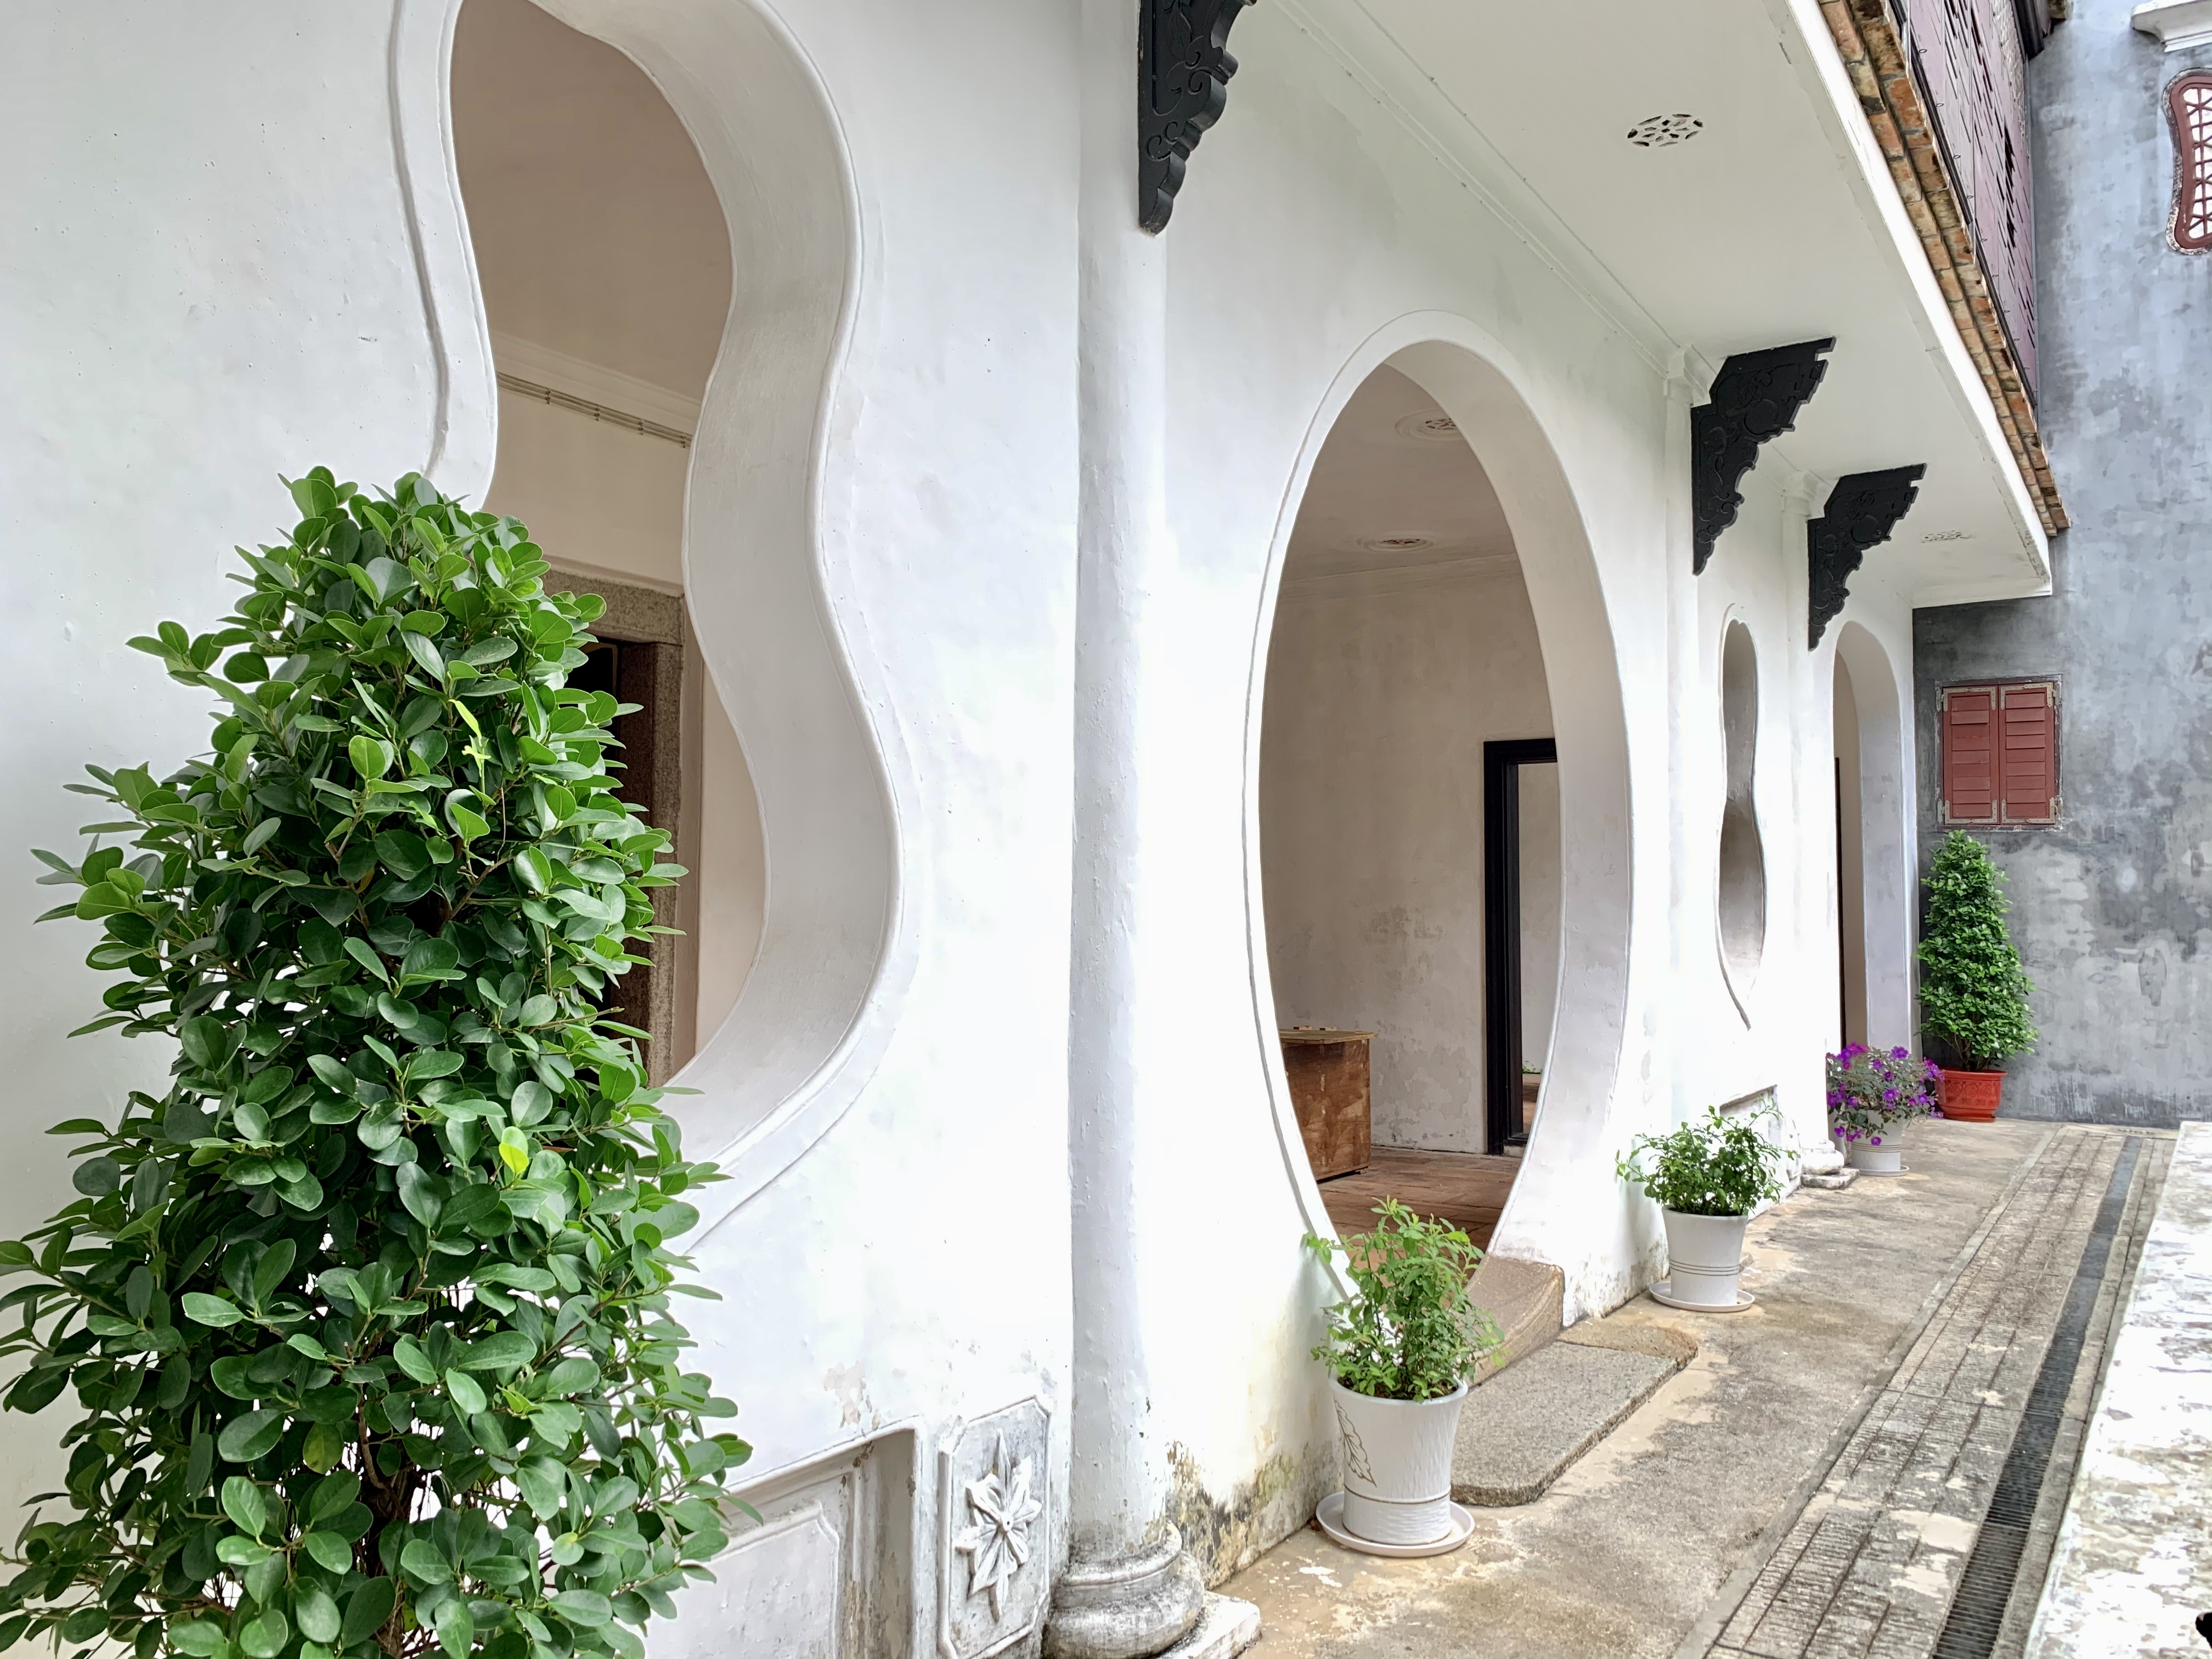 Mandarins House White Wall with Rounded Entrance Interior Patio Macau Lifestyle